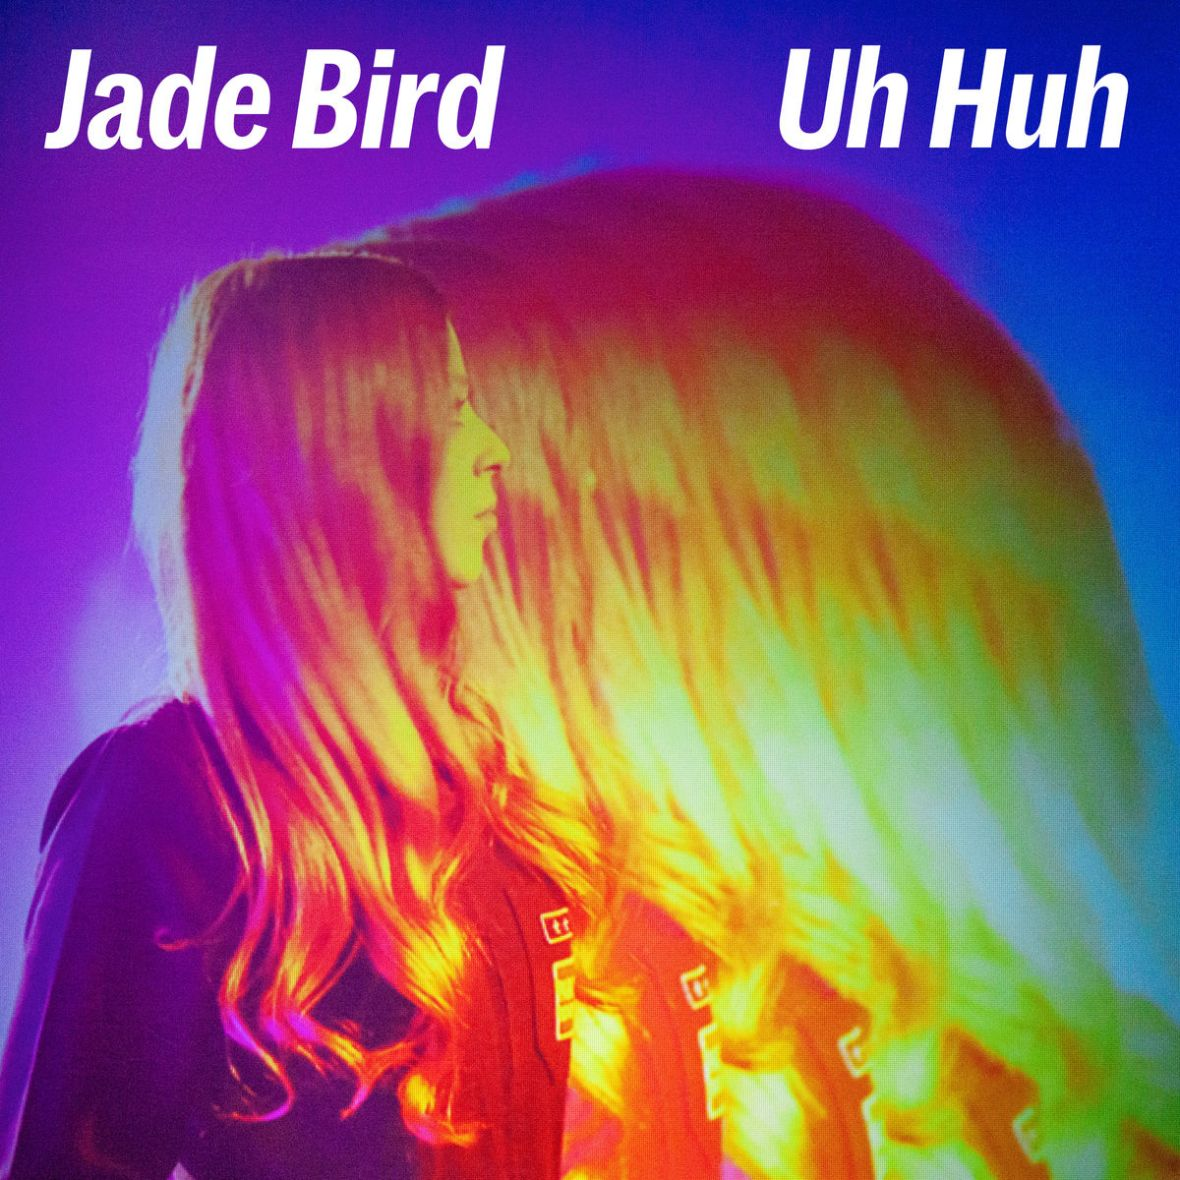 Jade Bird - Uh Huh